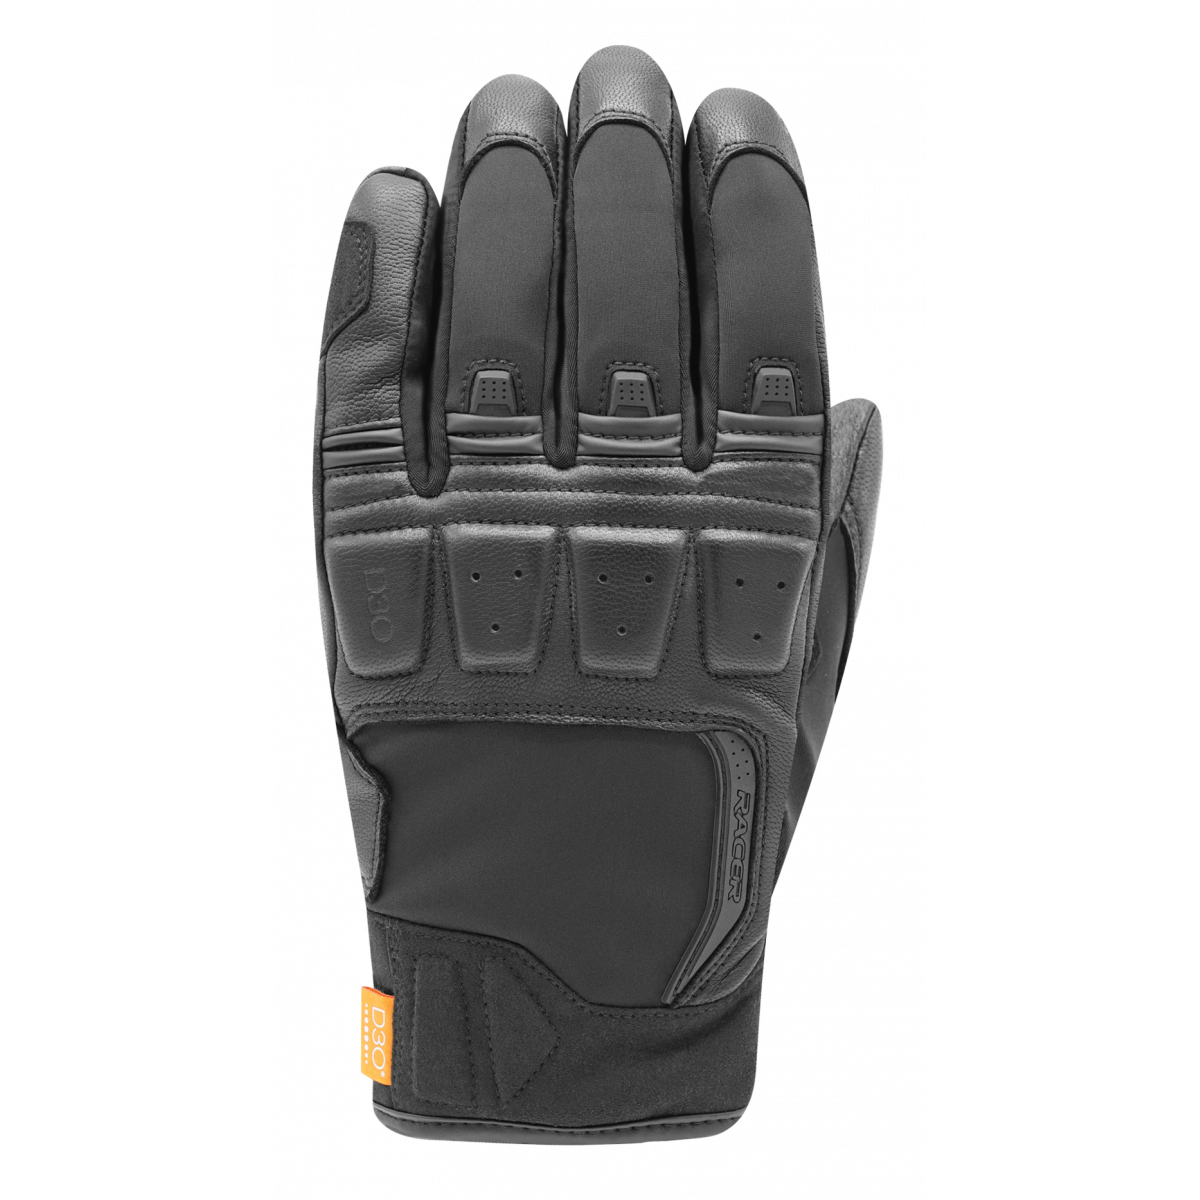 Racer Ronin Winter Gloves - Black